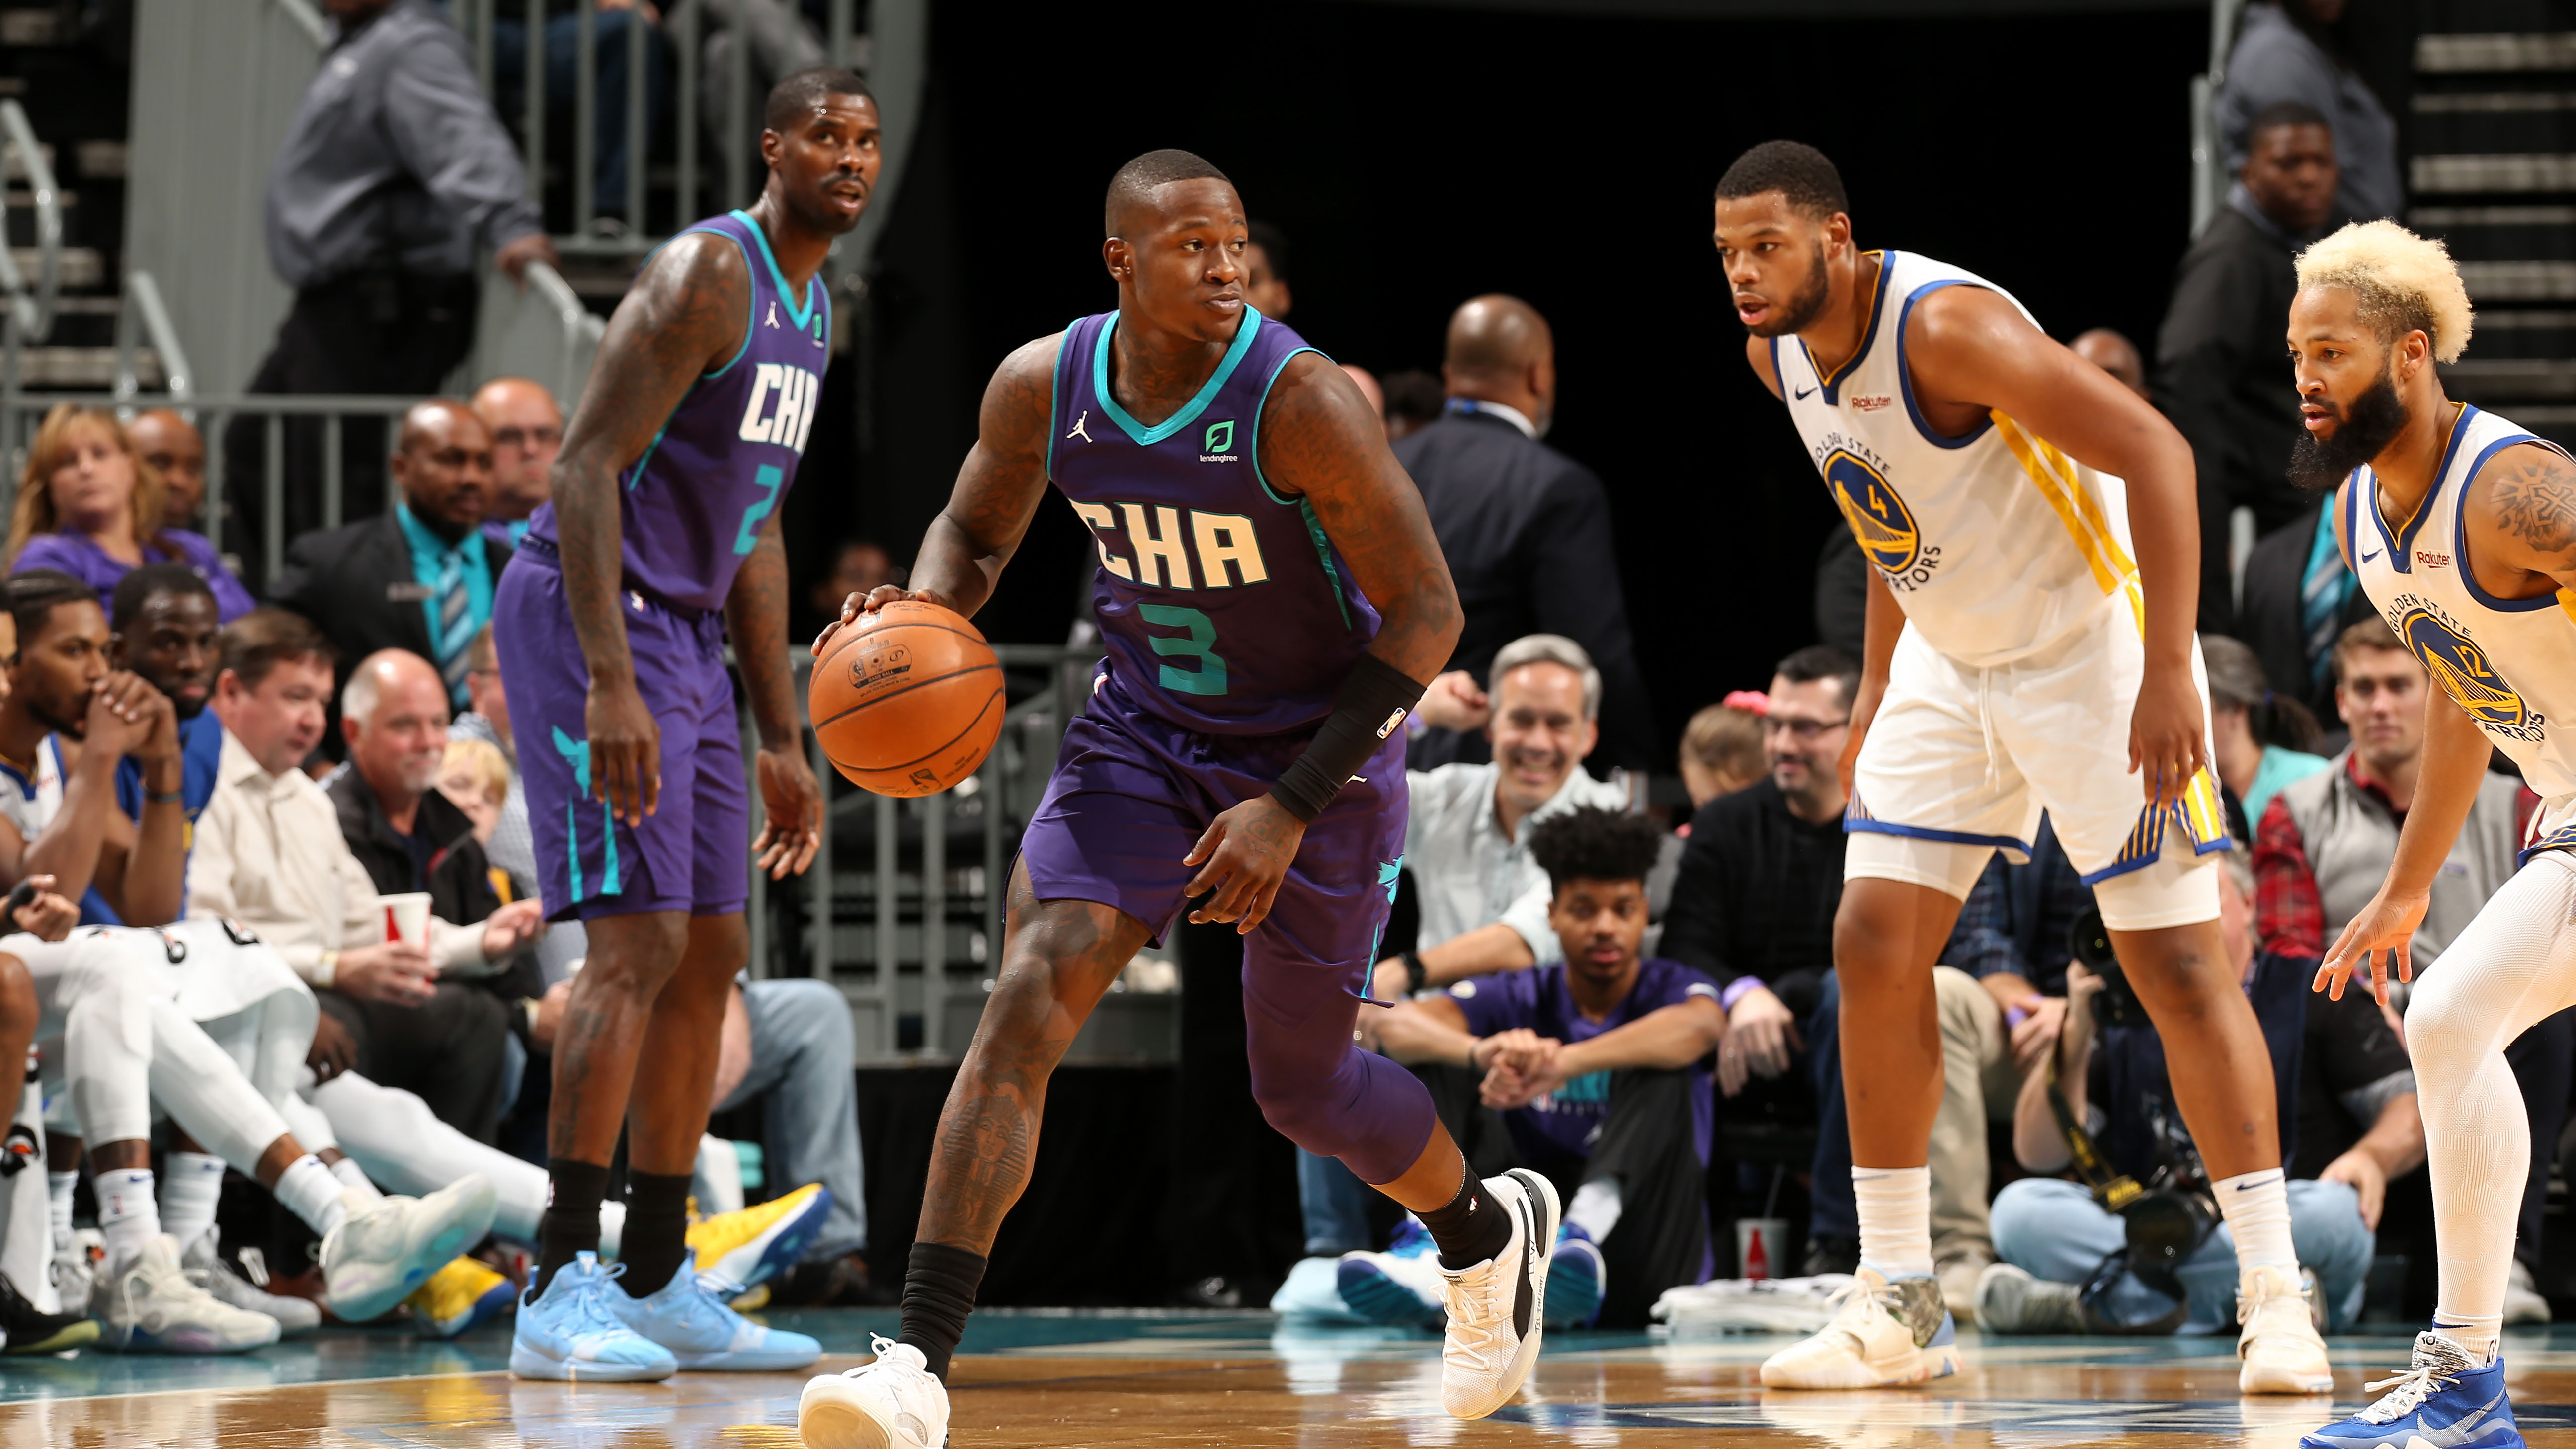 05.12.19. Обзор. GAME RECAP: Hornets 106, Warriors 91